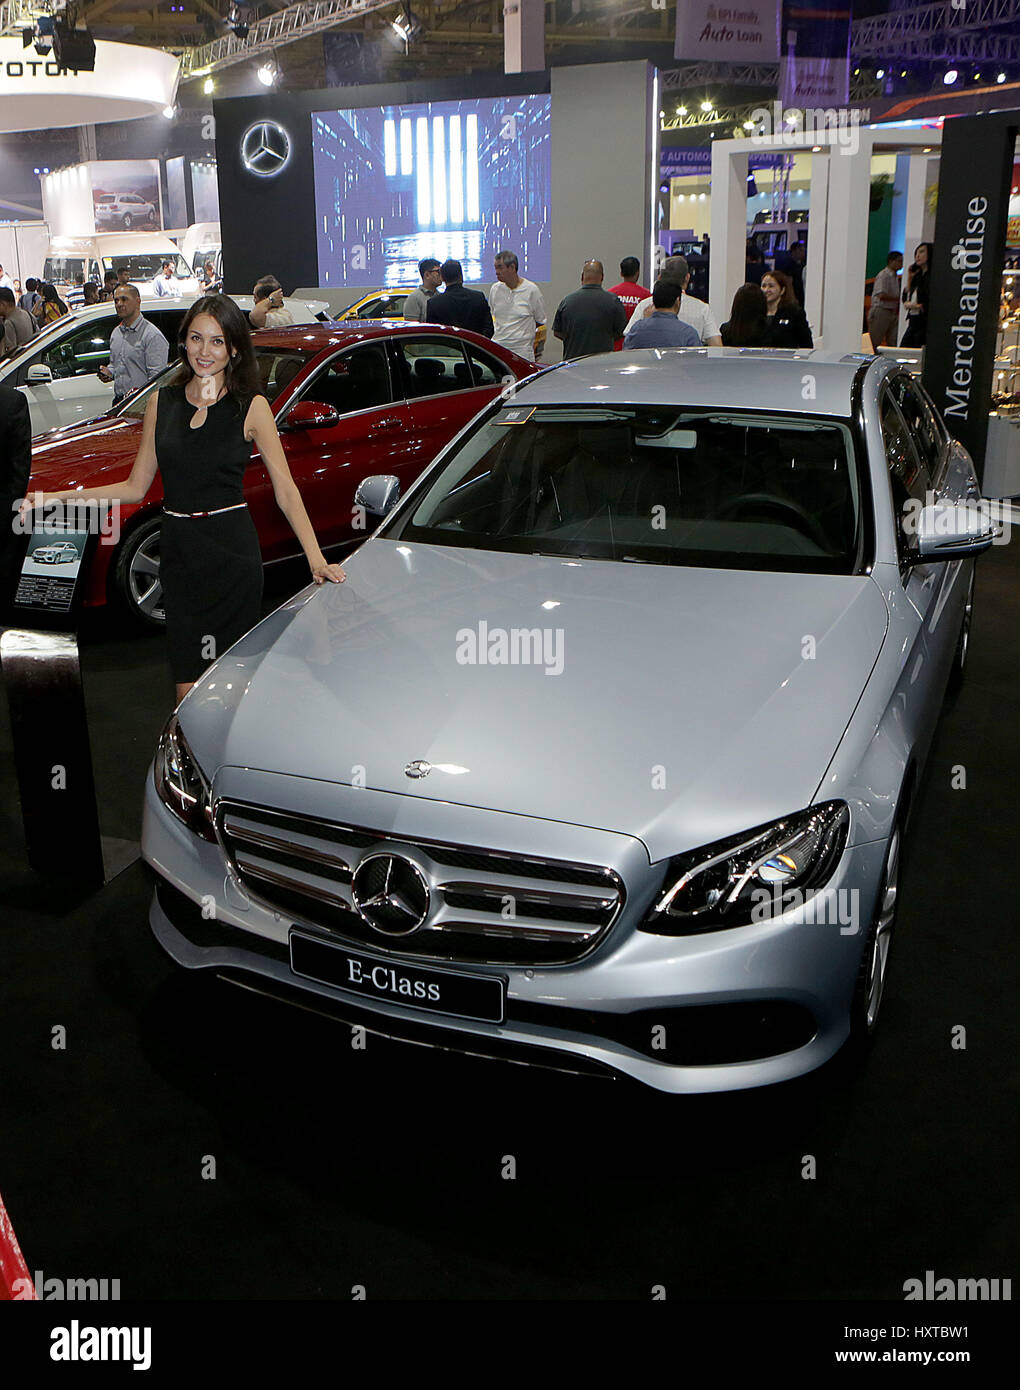 mercedes benz 30 stock photos & mercedes benz 30 stock images - alamy